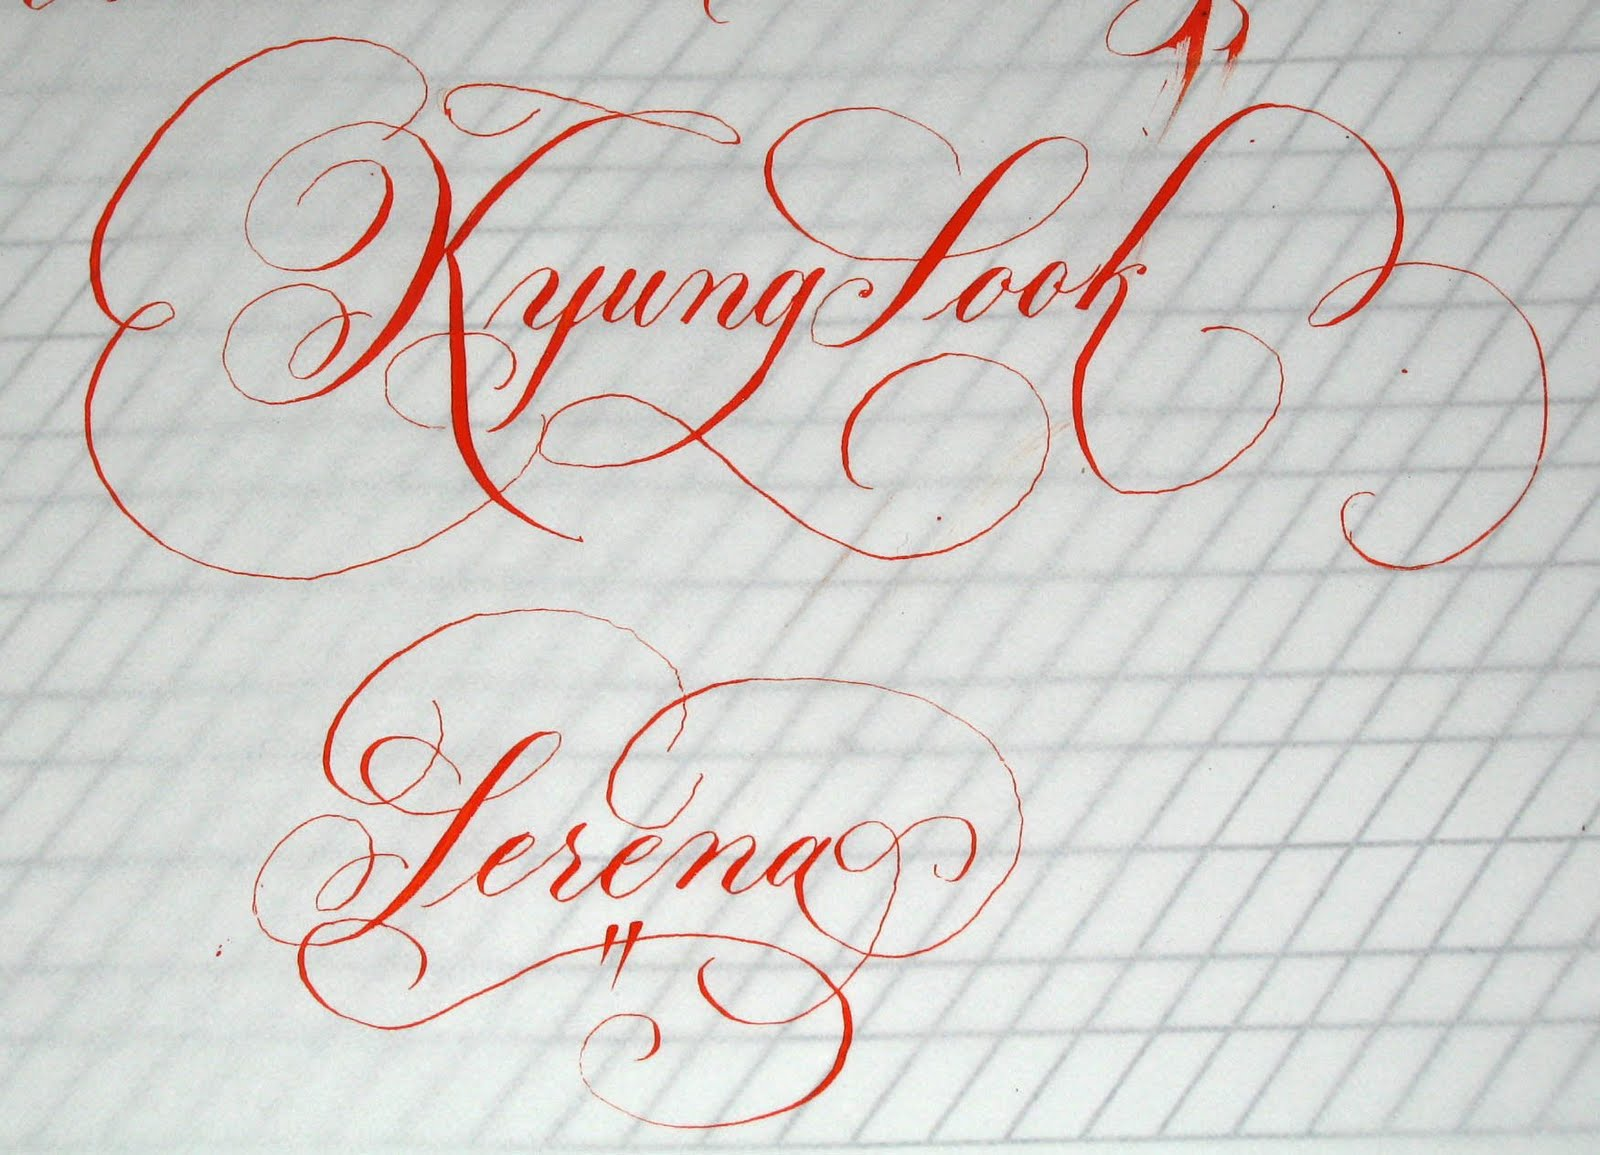 Deann Singh Calligraphy May 24 2010 Beverly Hills